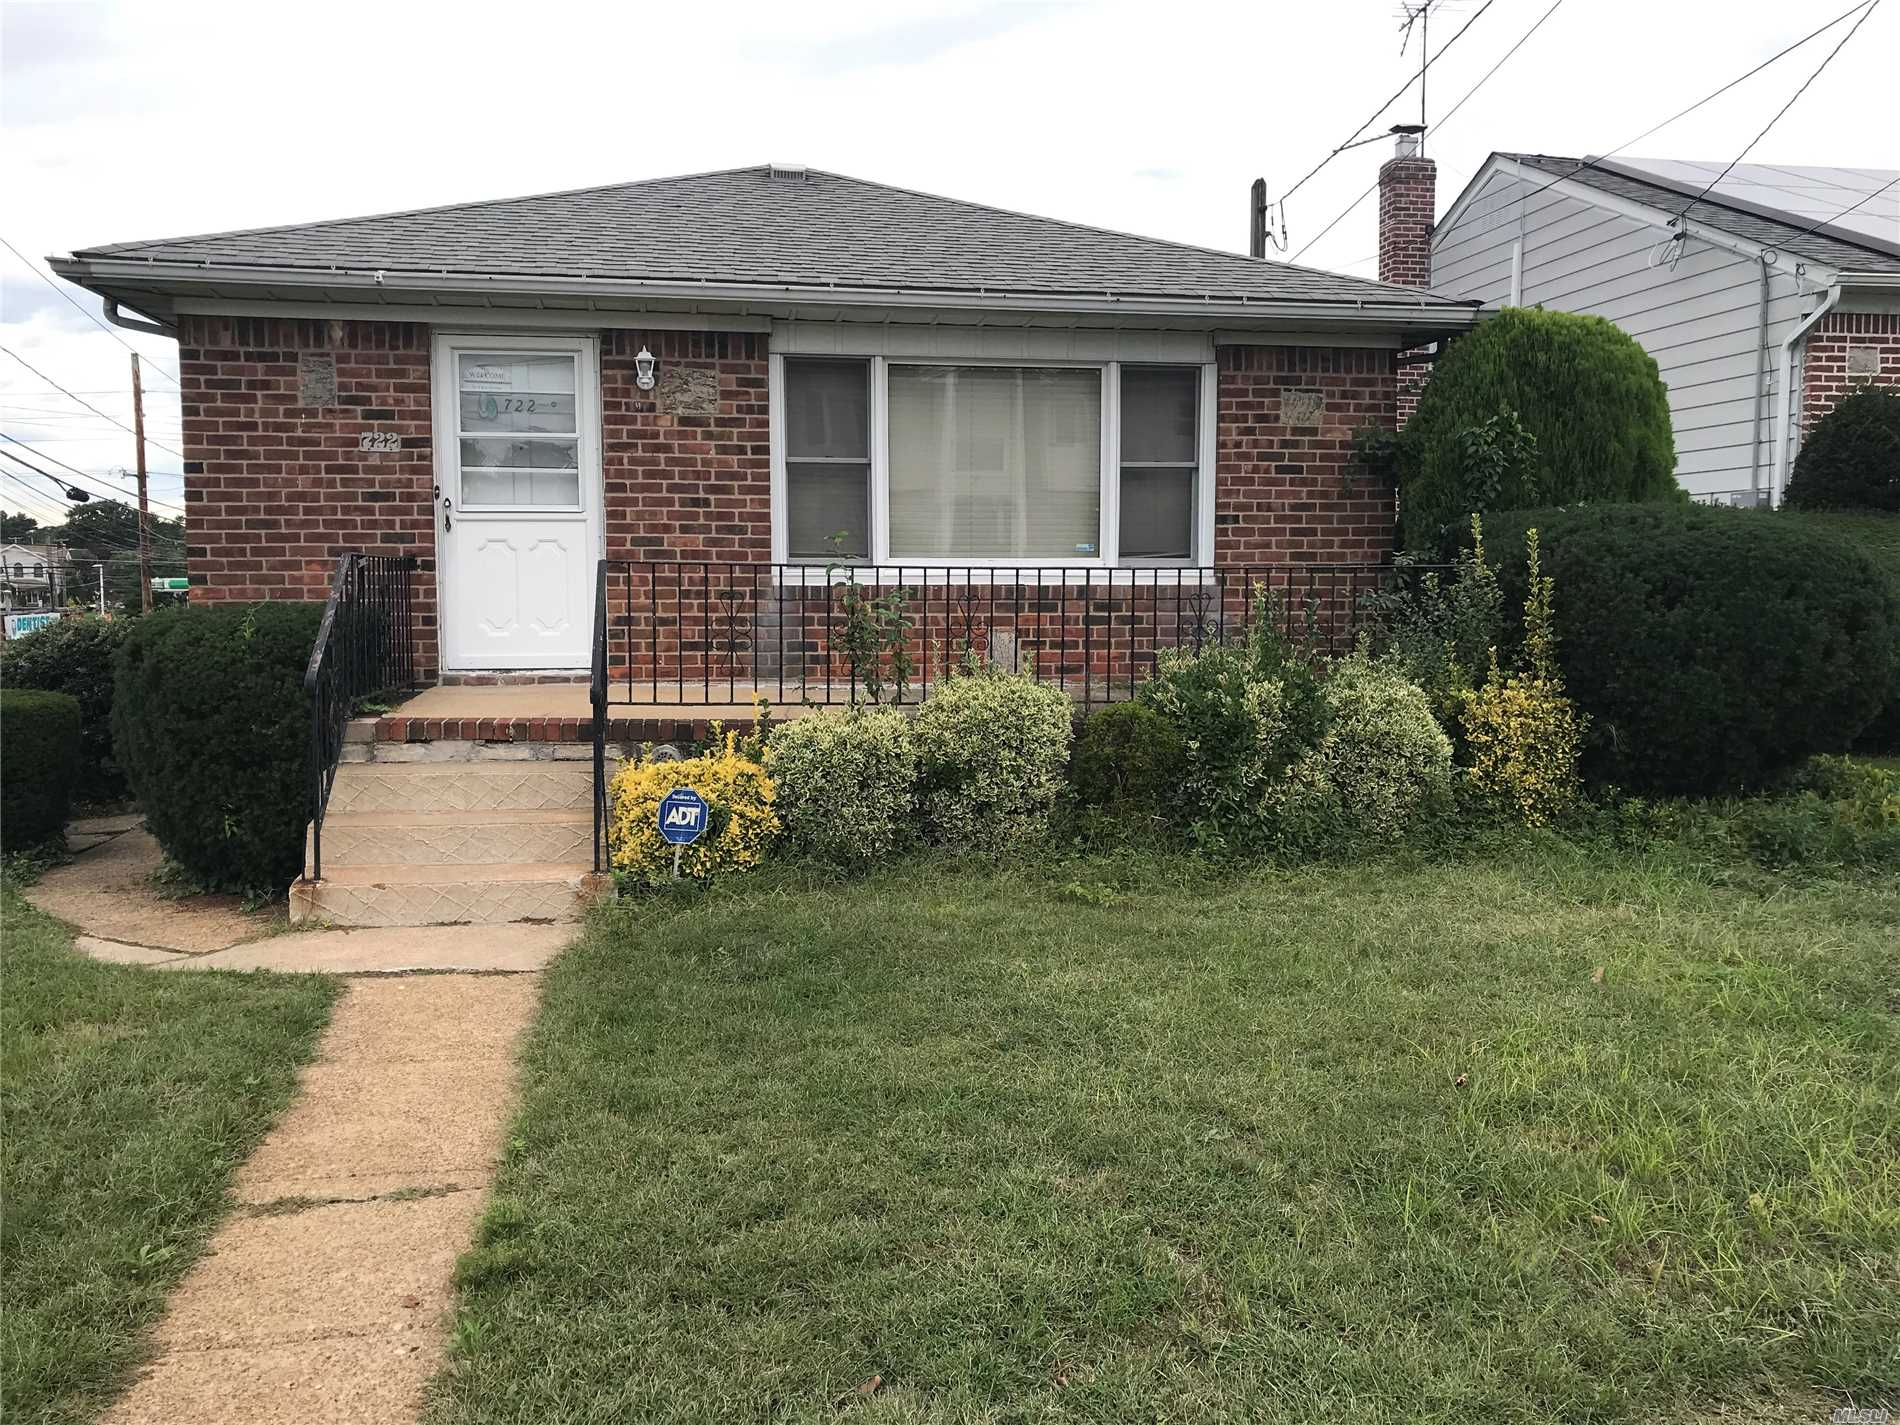 Beautiful 4 Bedroom 1.5 Bath Ranch Living Room Dining Room Eat In Kitchen Basement With Seperate Entrance In Ground Sprinkler System. Converted From Oil To Gas Under 5 Years Ago. Corner Property With 1 Car Garage And Ample Yard Space. Will Not Last Schedule An Appointment Today